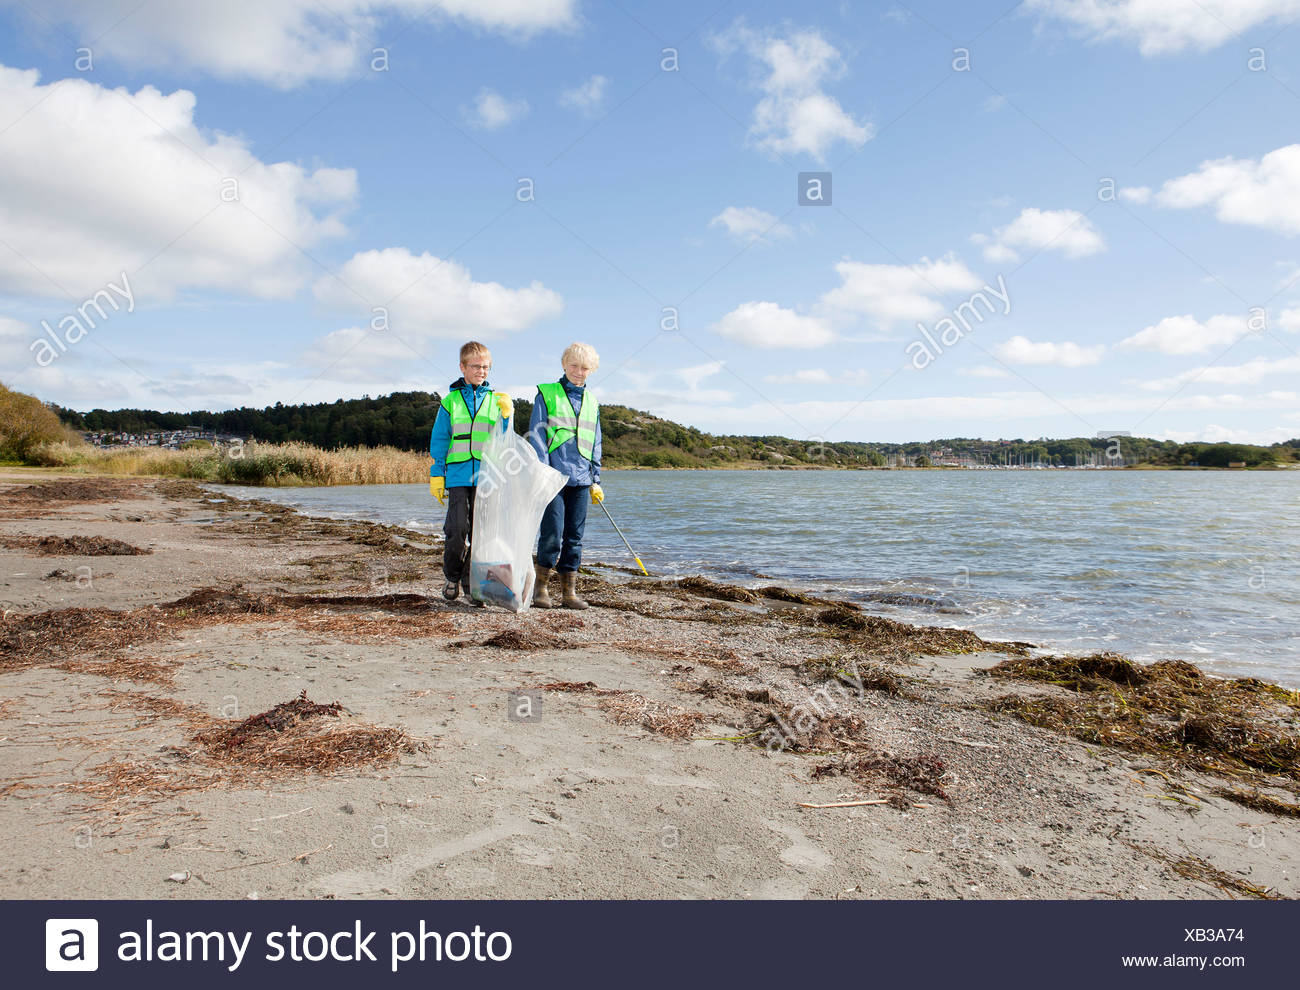 Boys in safety vests cleaning beach - Stock Image